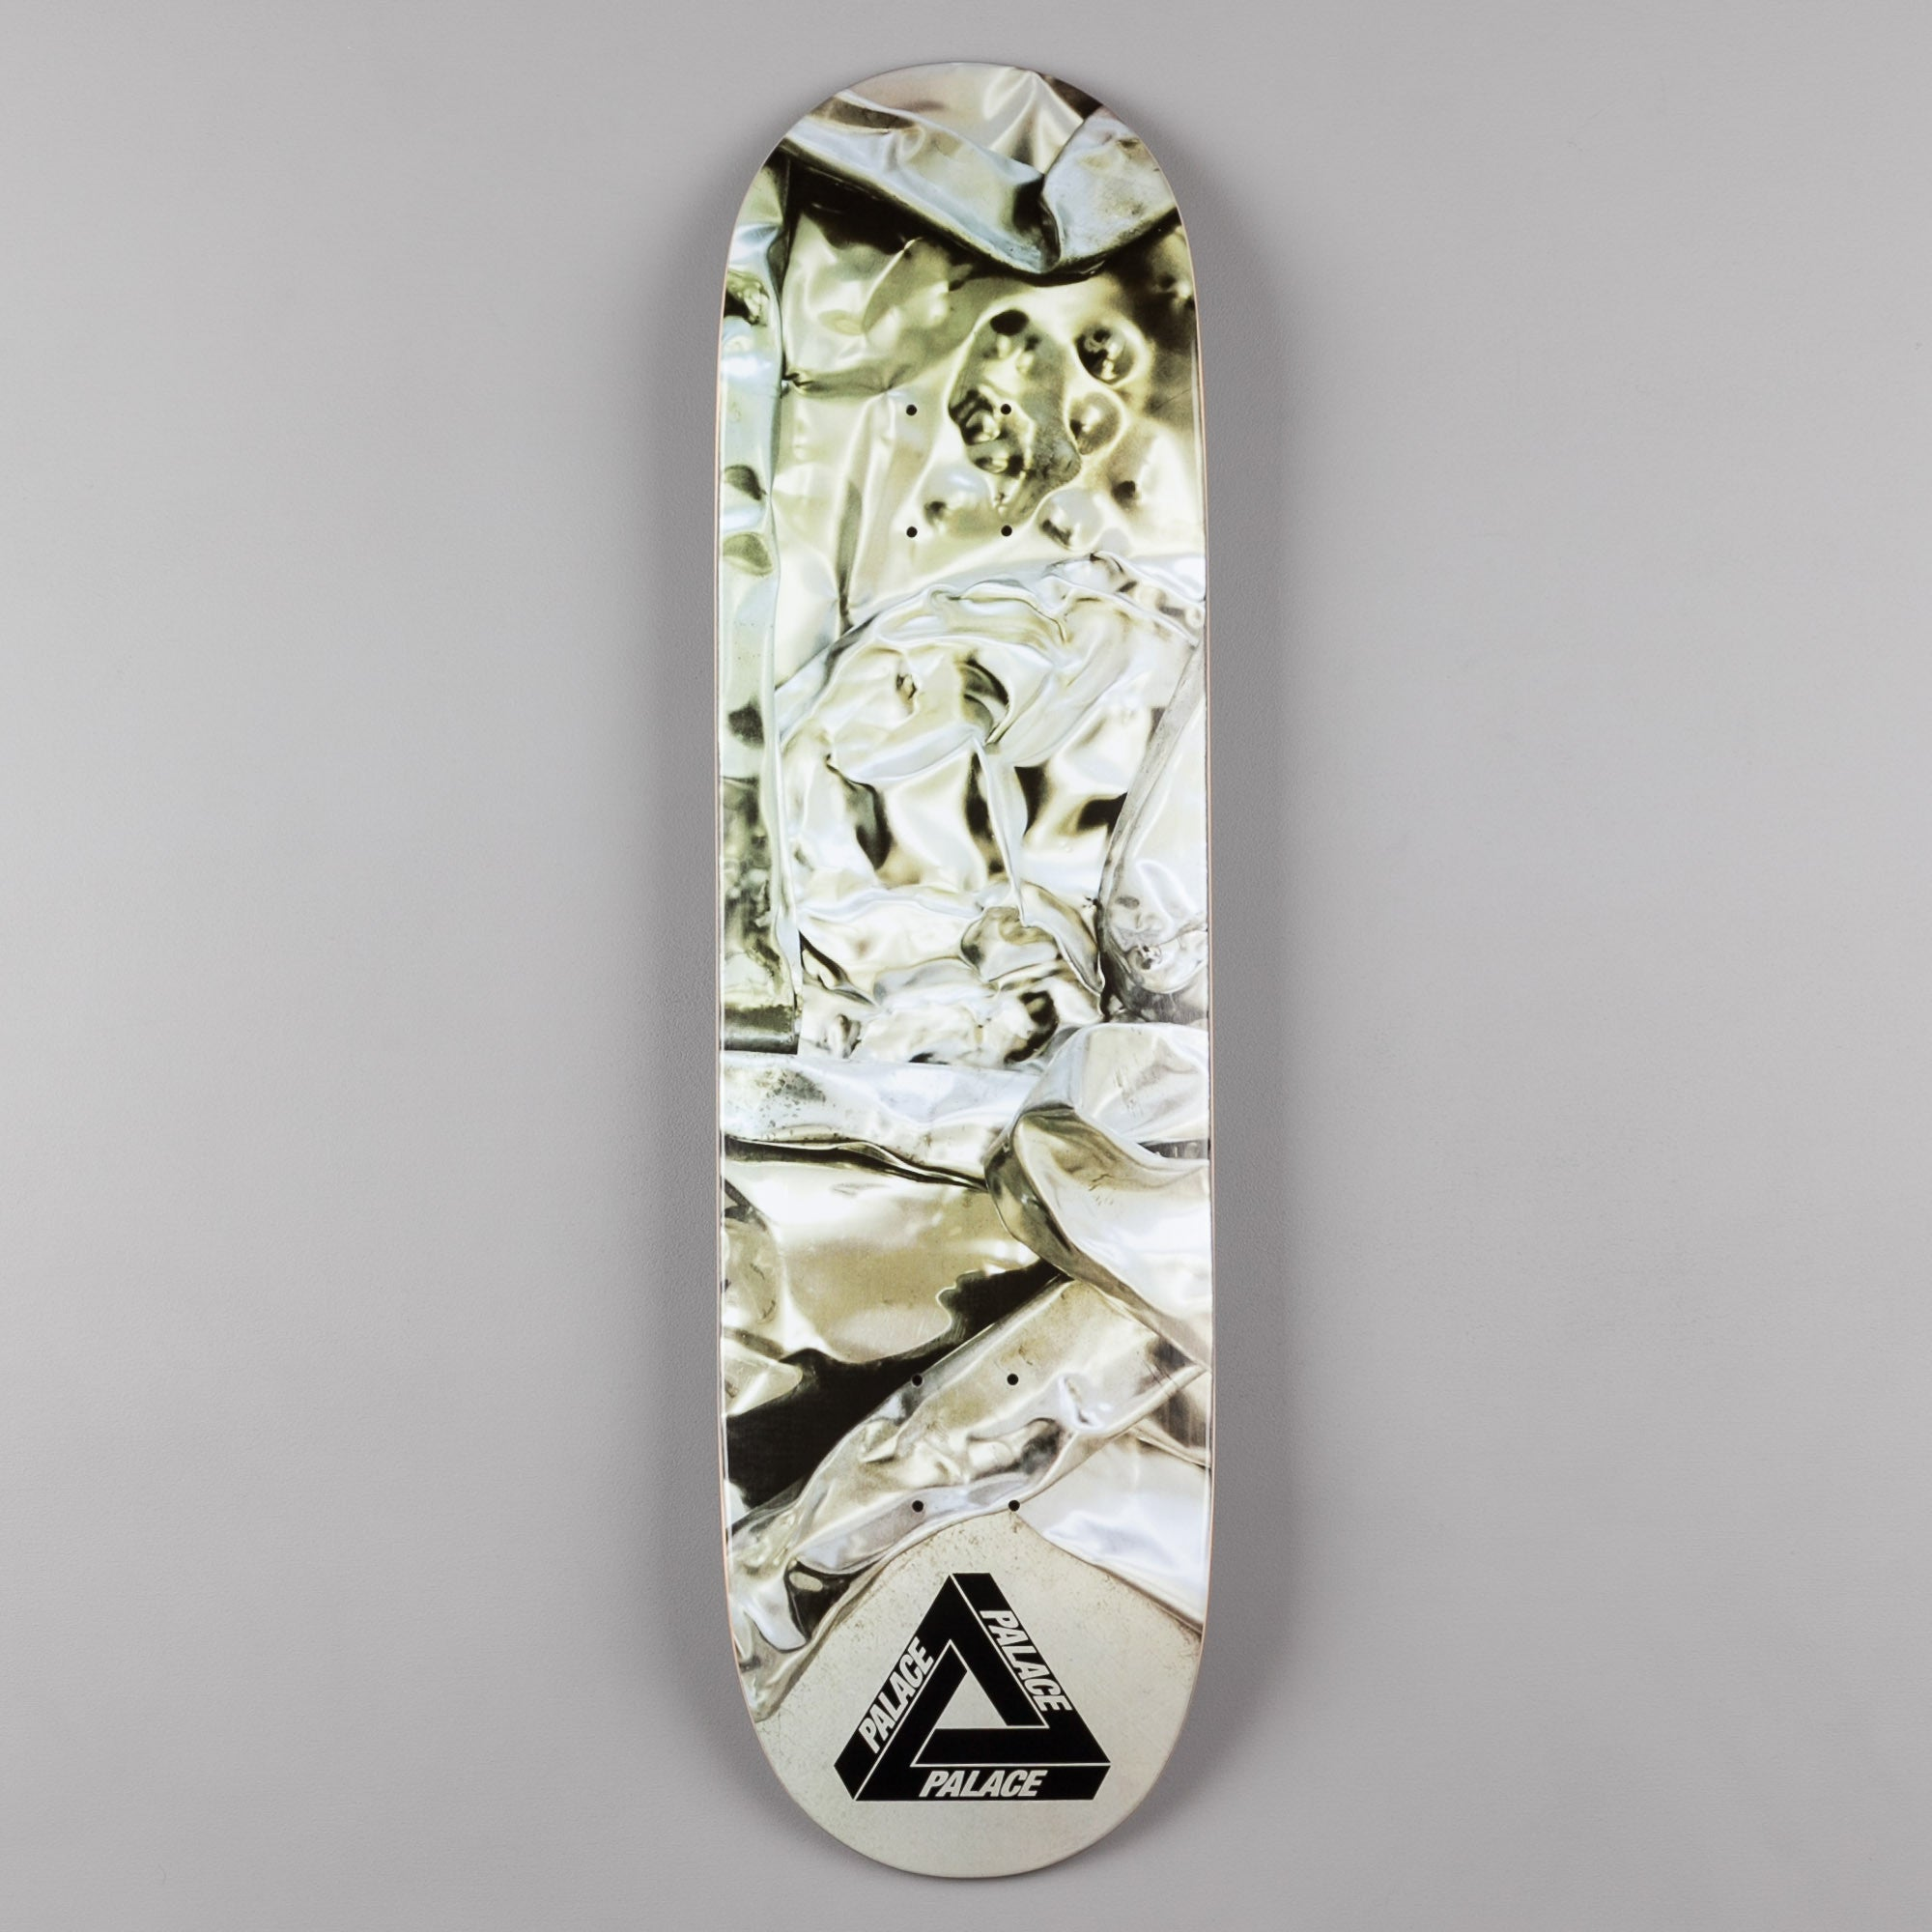 Palace Ben Board Deck - 8.5""